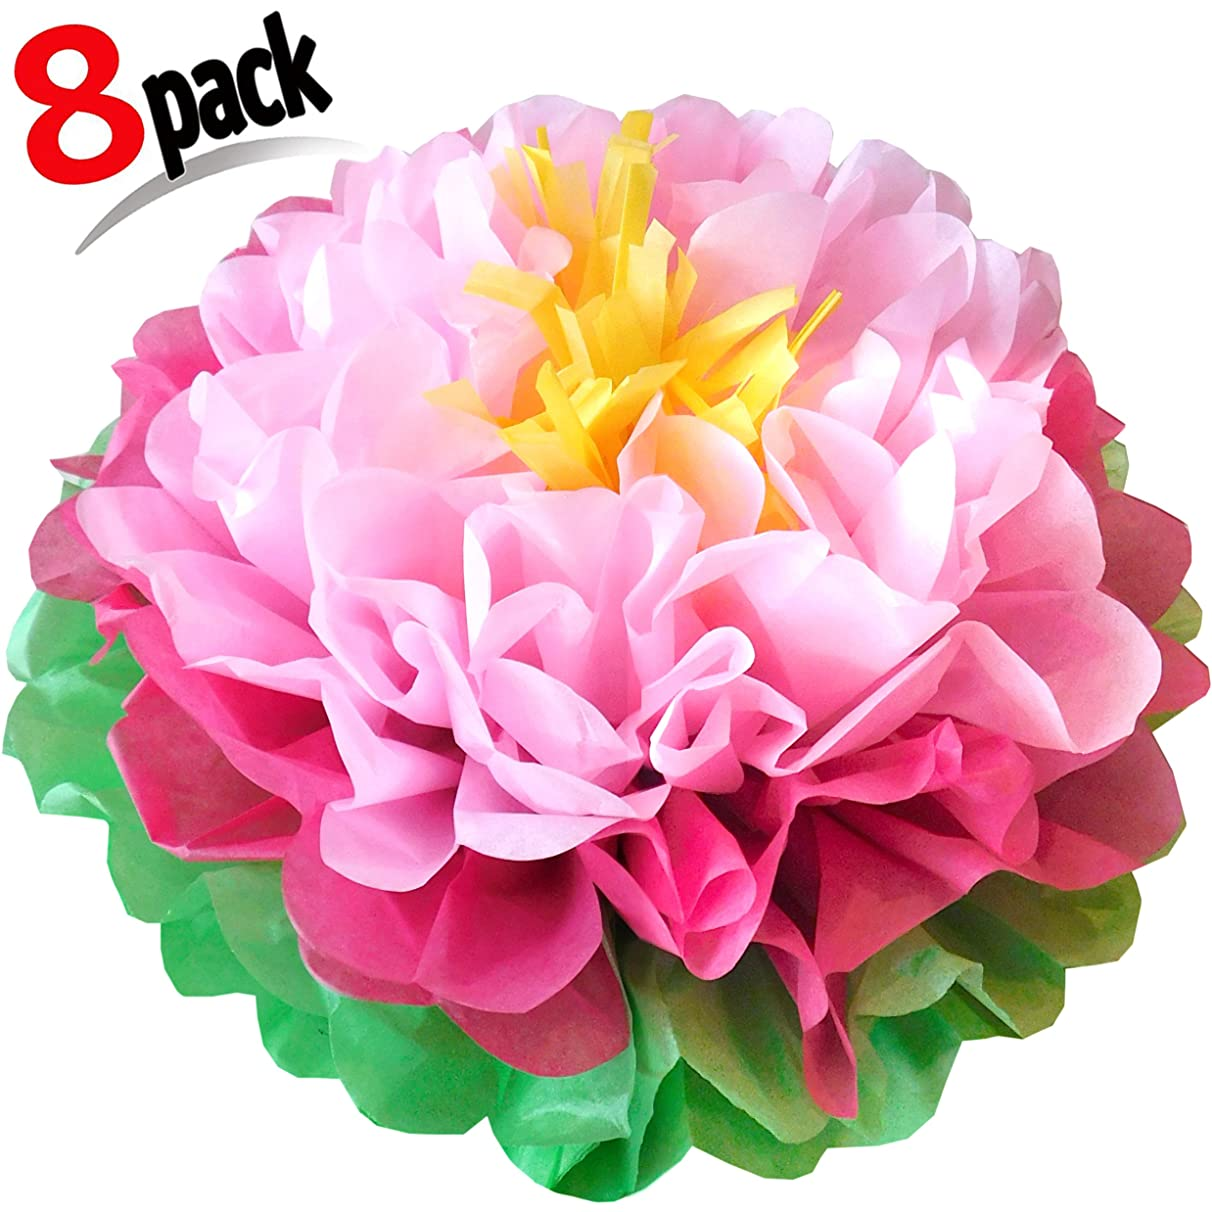 Paper Flowers Pink ! Pack of 8 Pieces Giant 15